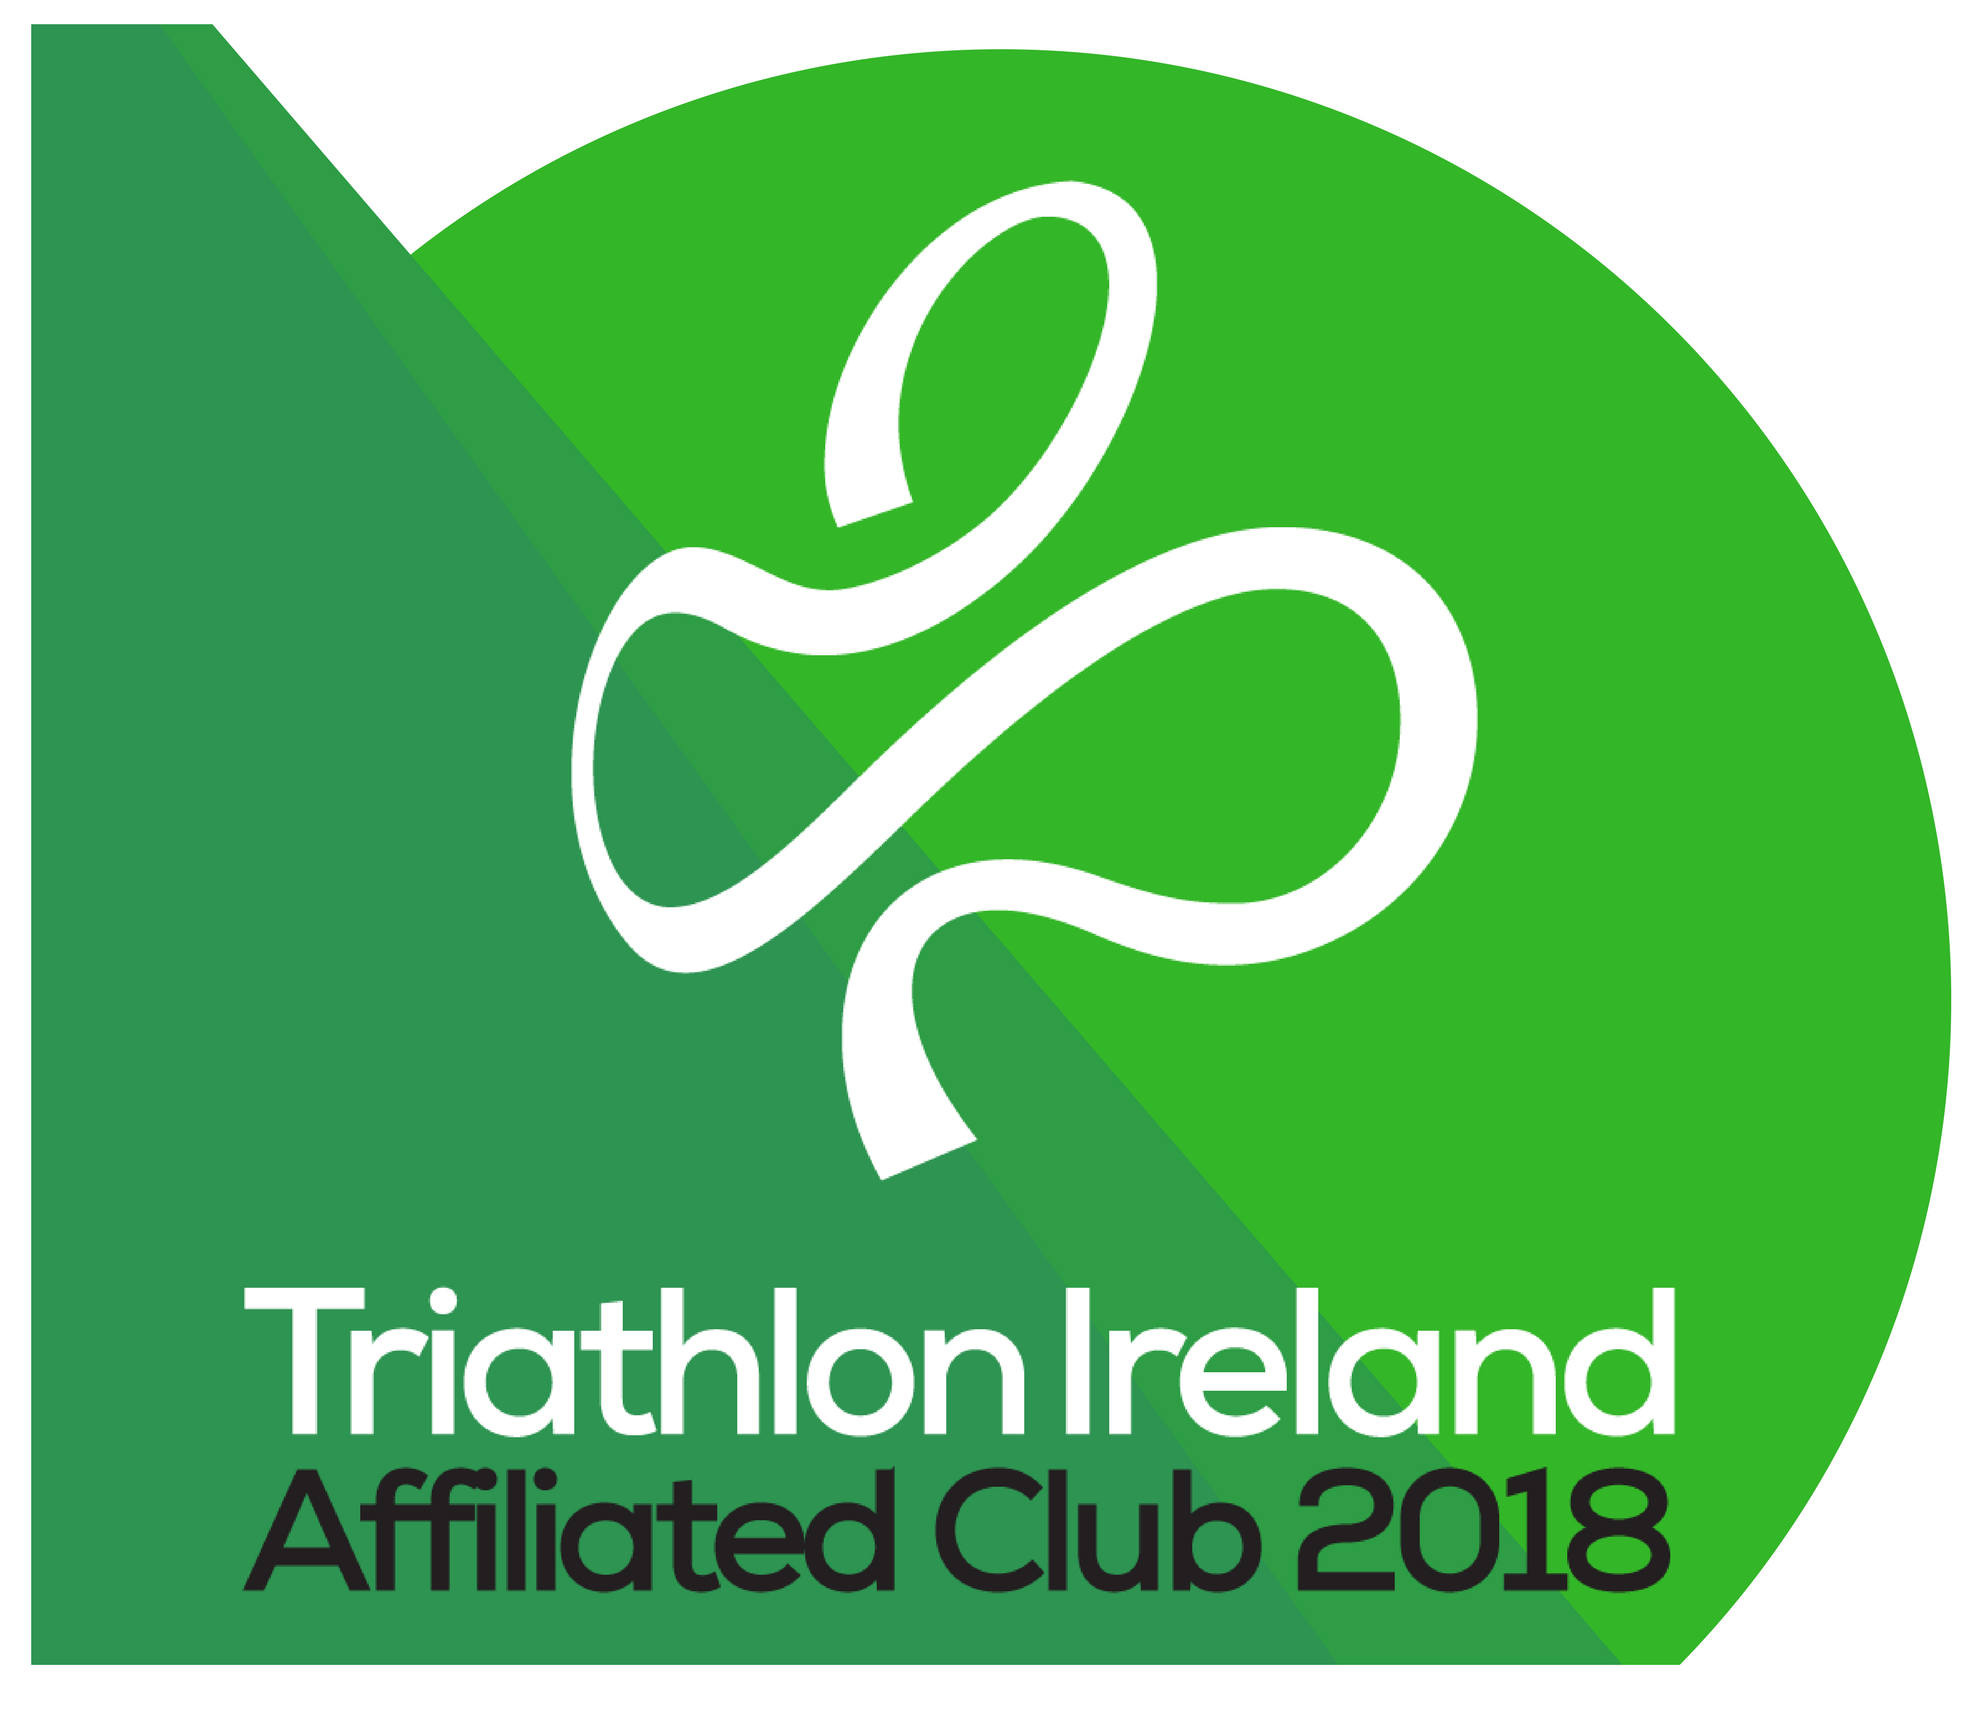 Triathlon Ireland 2018 | Longford Triathlon Club